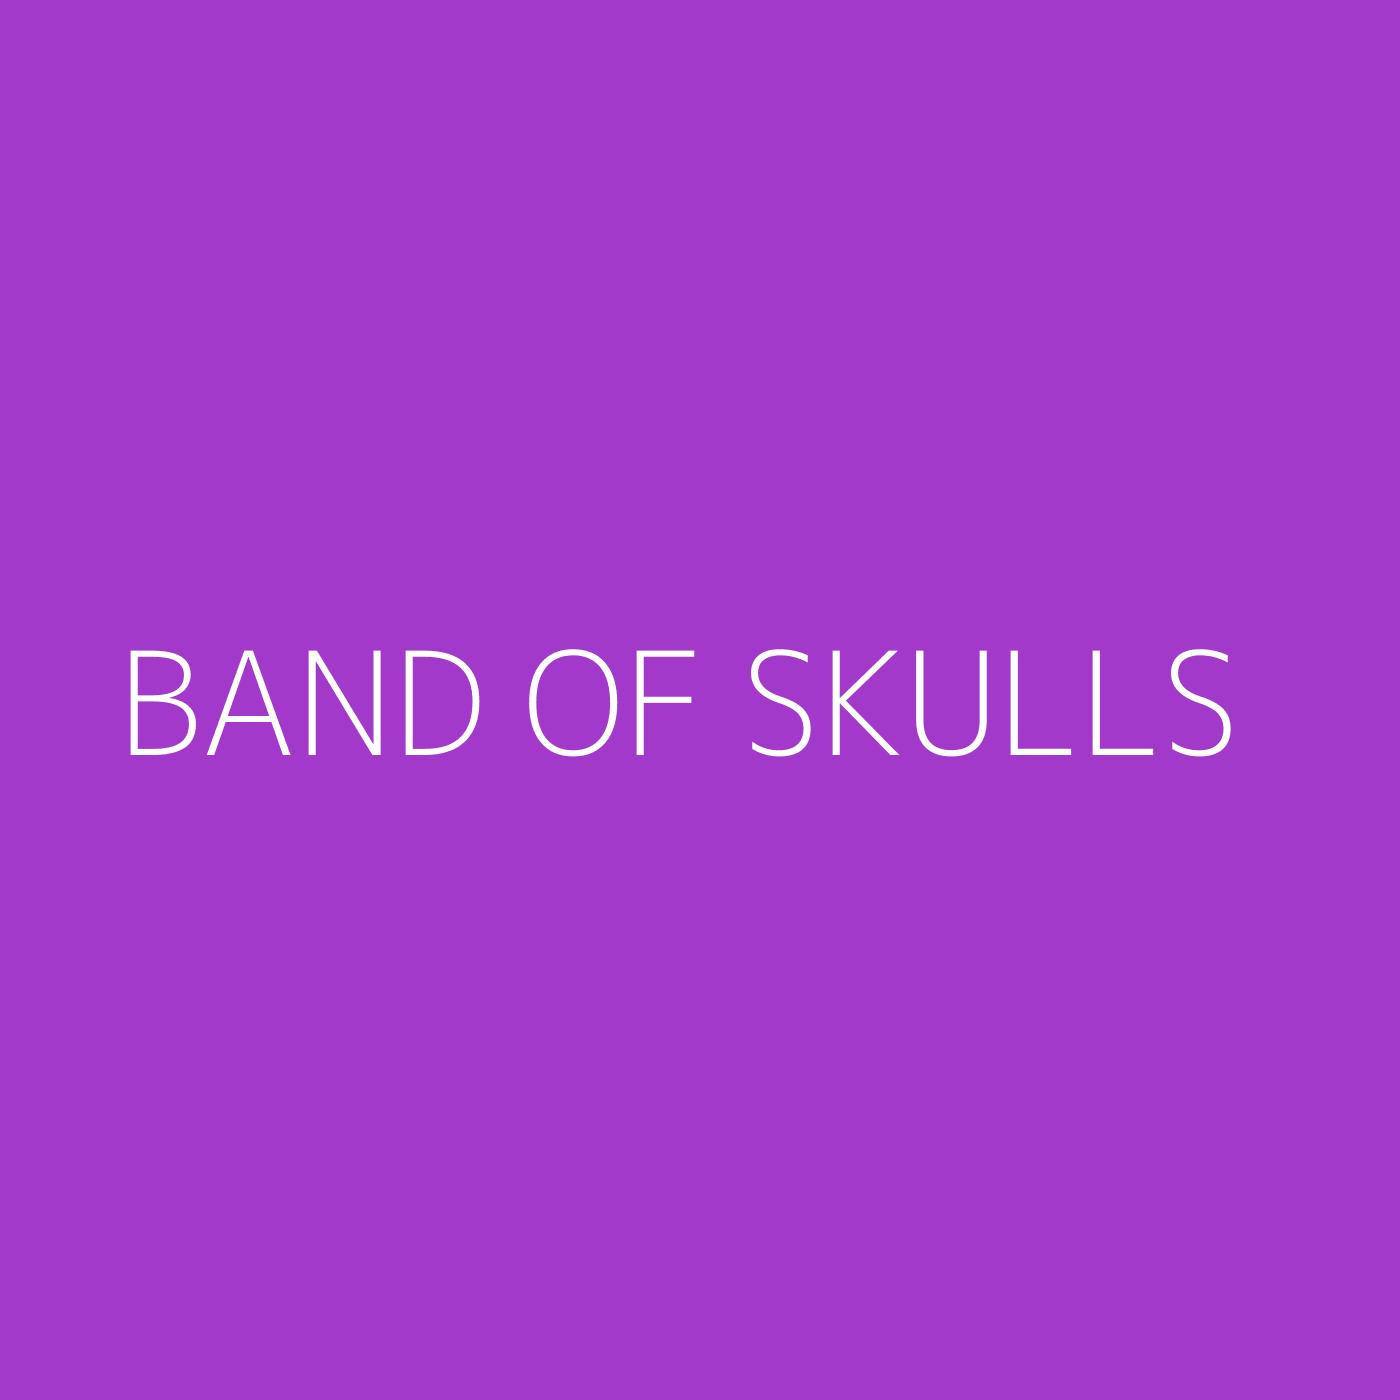 Band Of Skulls Playlist Artwork